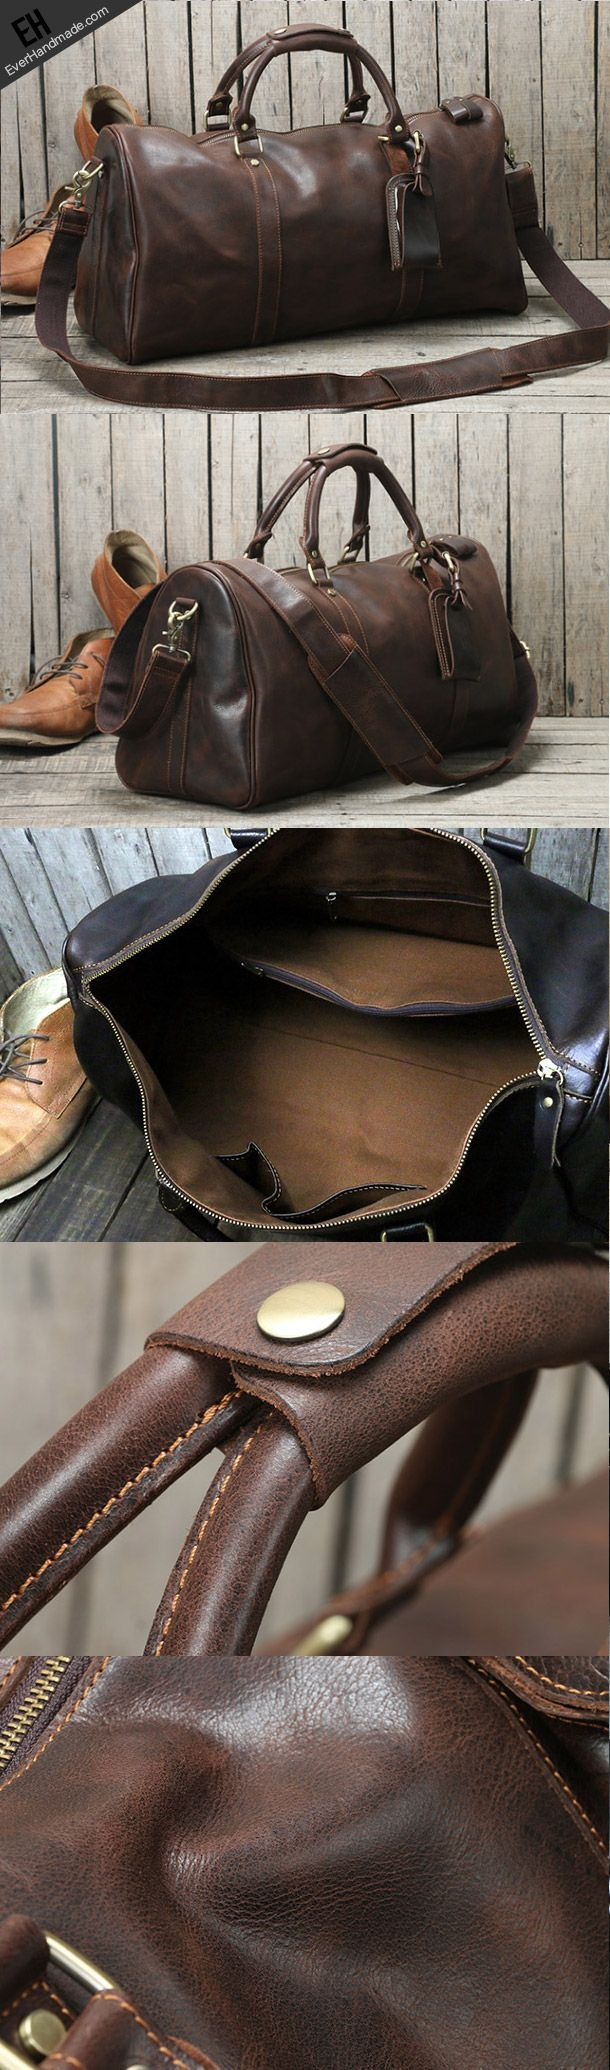 Handmade leather men Travel Duffle Bag Laptop Weekender Bag Overnight Bag vintage shoulder vintage bag - black ladies bag, suede tan clutch bag, leather bags for ladies *sponsored https://www.pinterest.com/bags_bag/ https://www.pinterest.com/explore/bags/ https://www.pinterest.com/bags_bag/drawstring-bag/ https://us.puma.com/en_US/women/accessories/bags